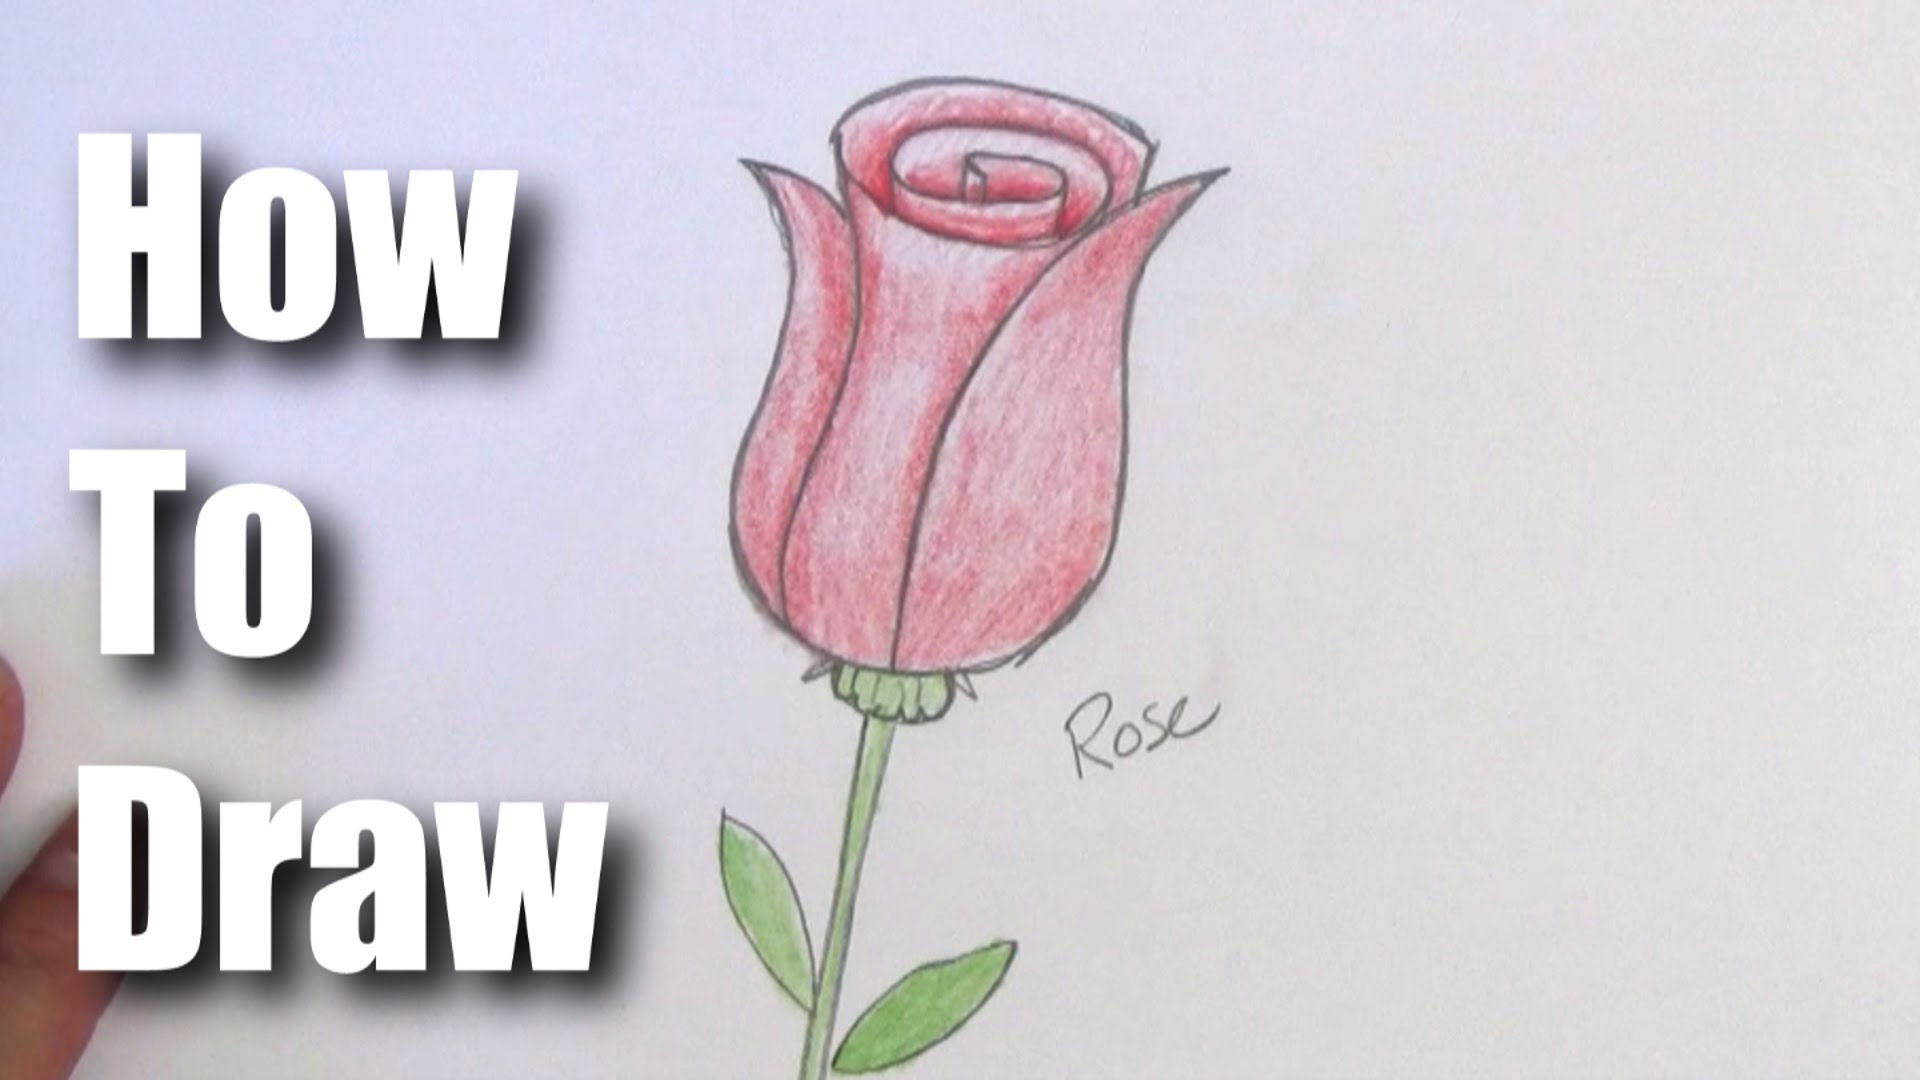 Drawn rose beginner For A A Rose Step